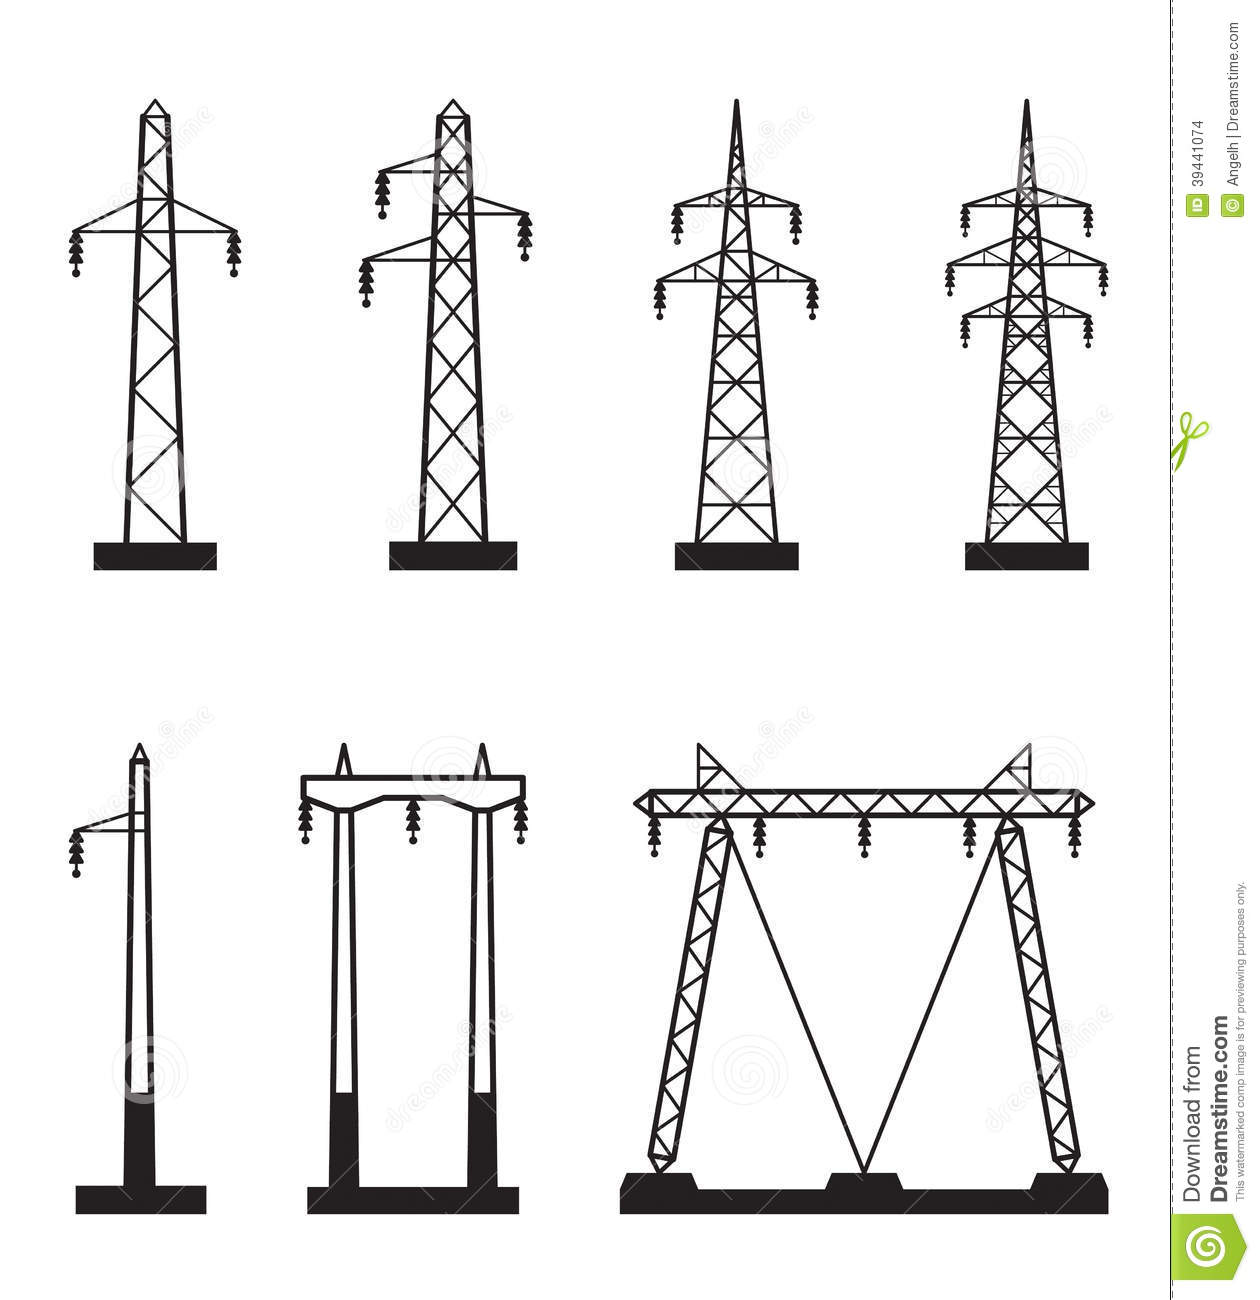 Types Of Electrical Poles : Electrical transmission tower types stock vector